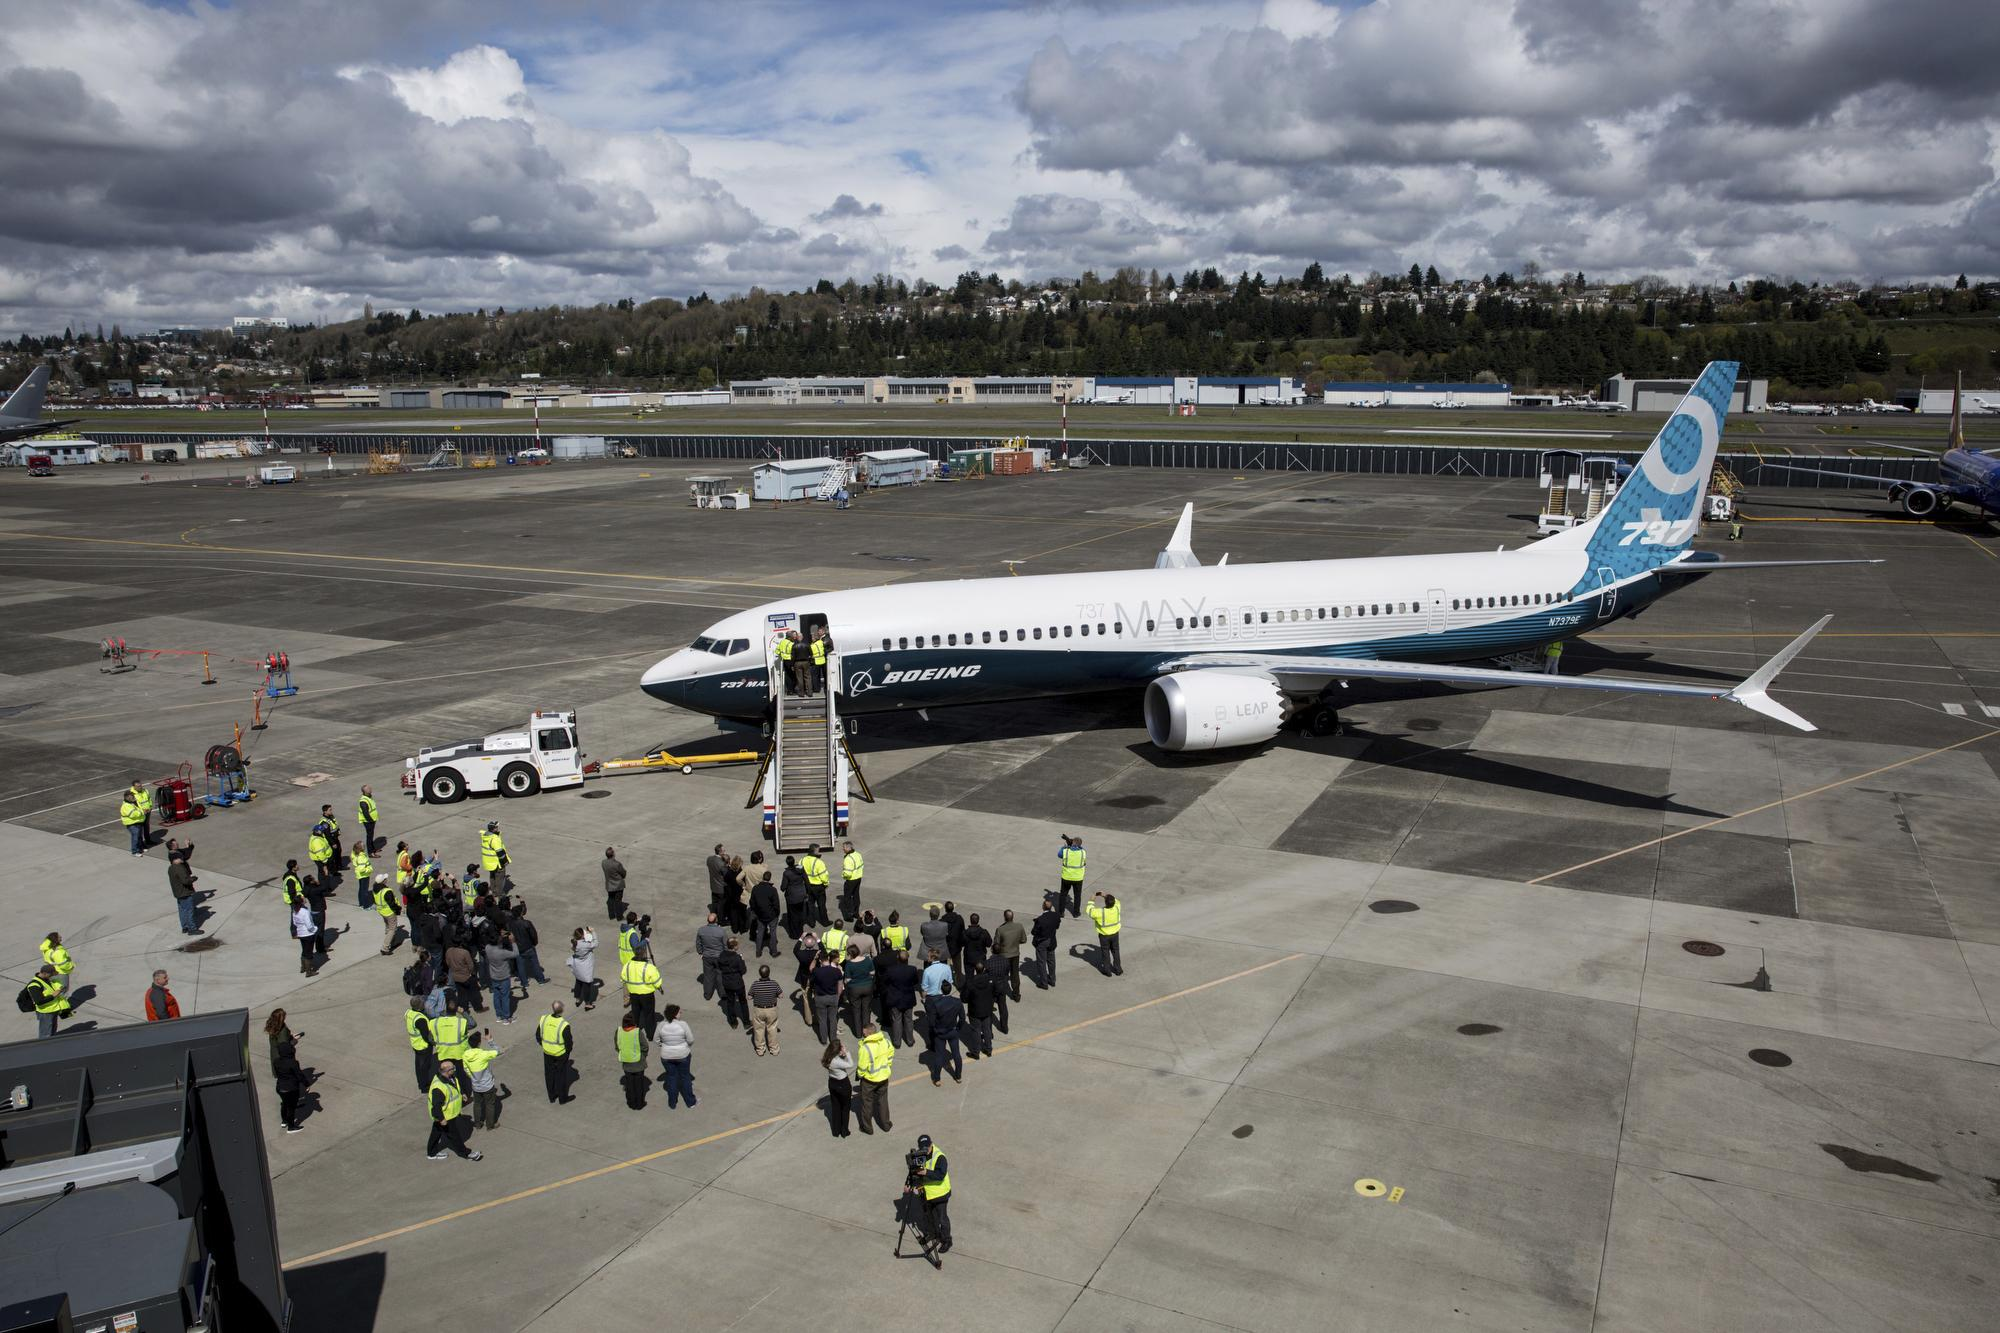 Boeing's largest 737 Max takes flight amid headwinds from